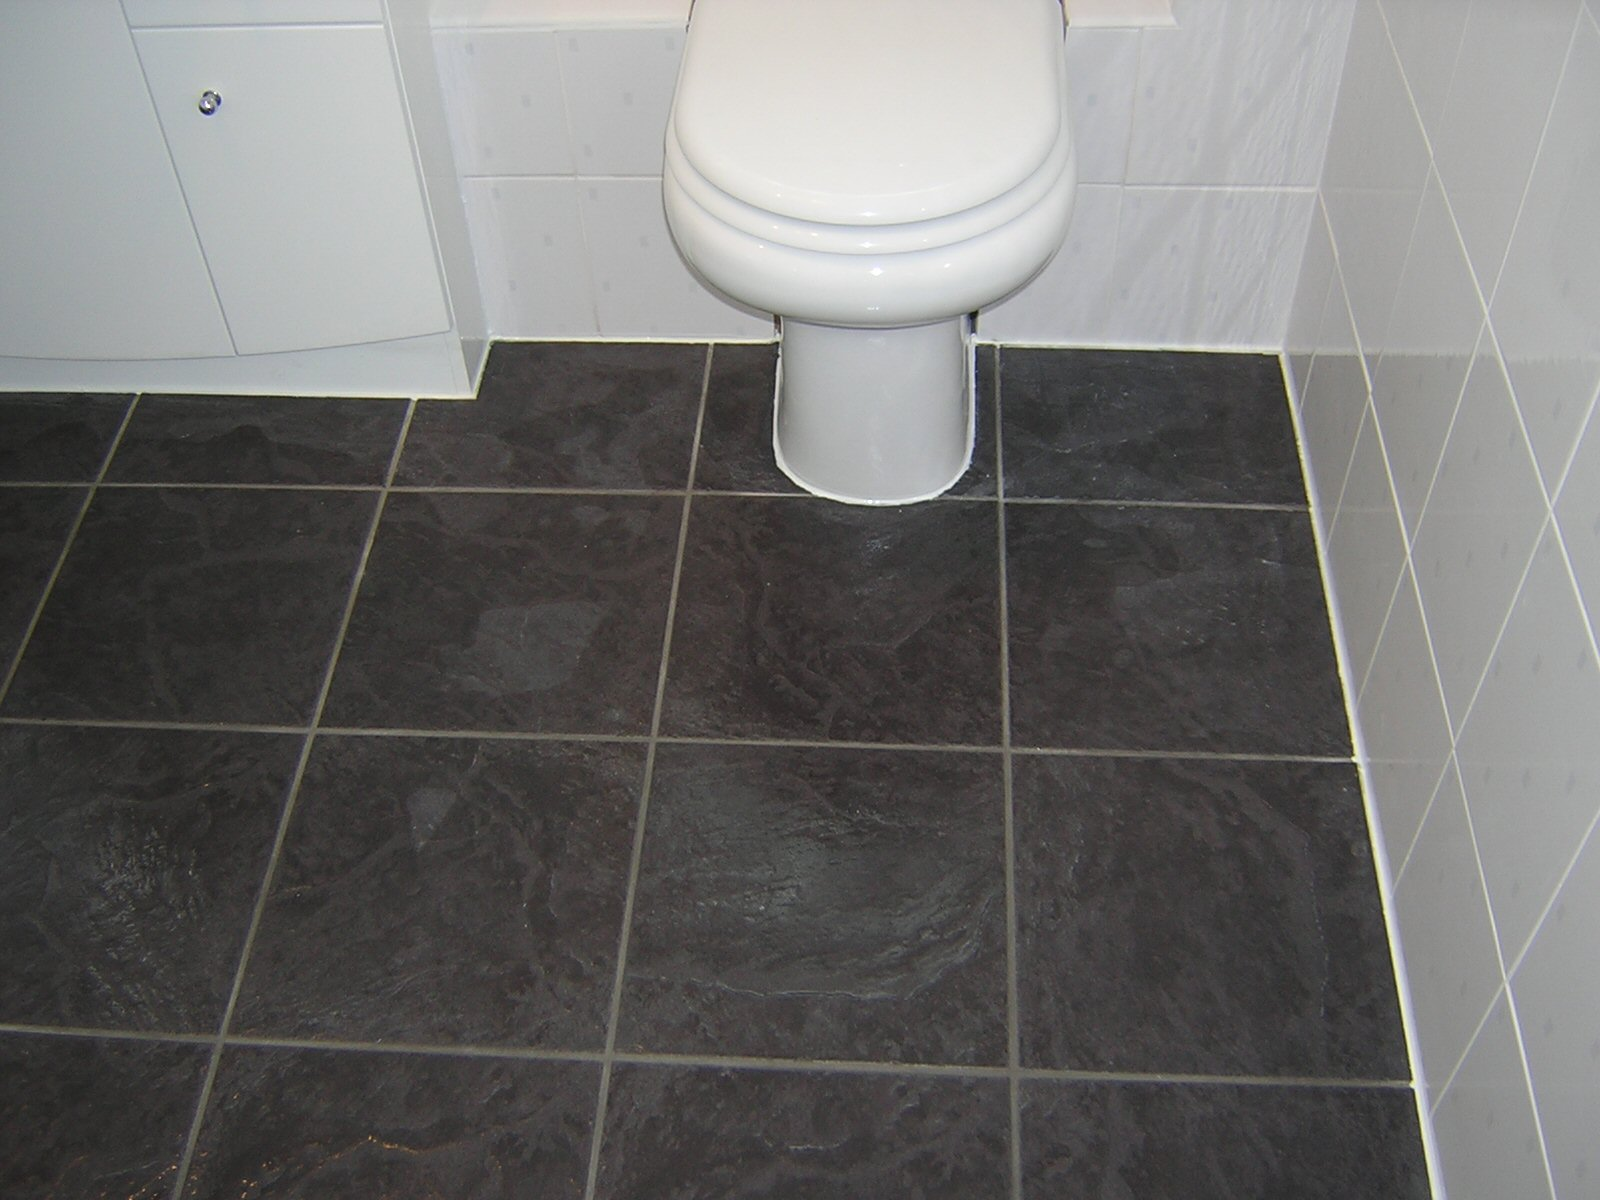 30 Amazing Ideas And Pictures Of The Best Vinyl Tile For: images of bathroom tile floors